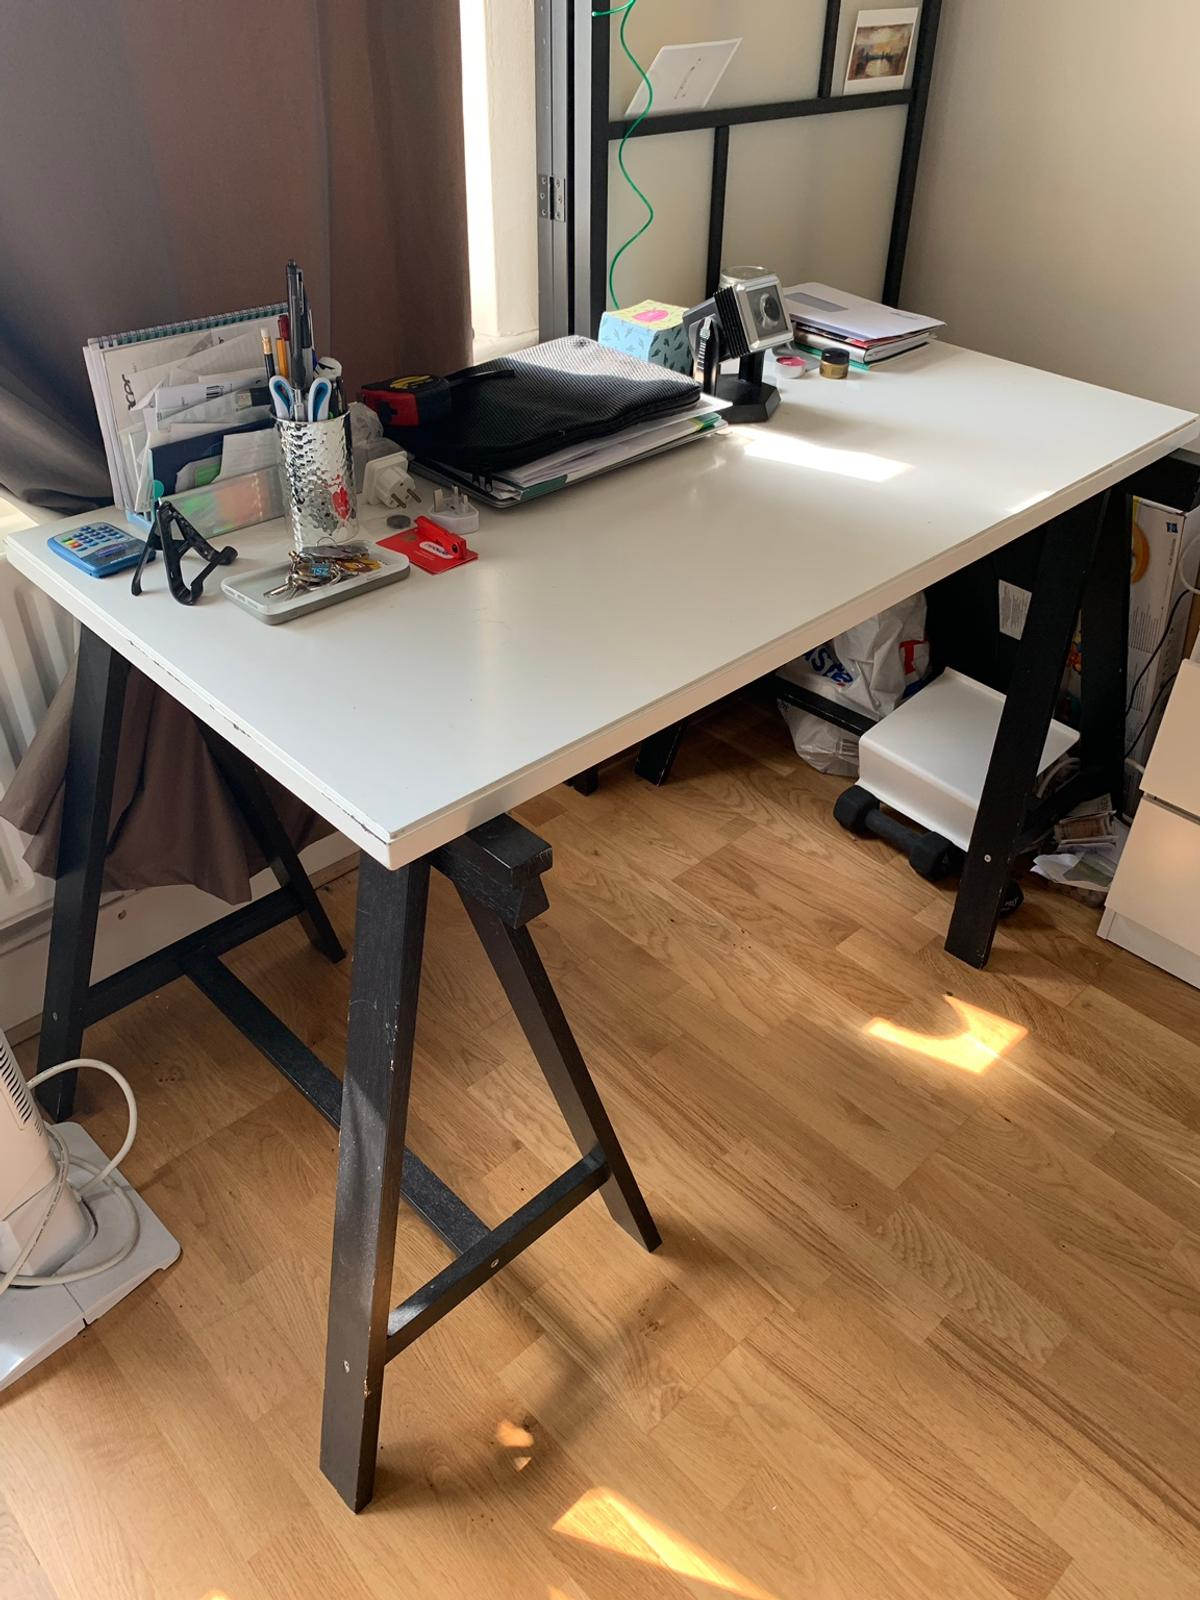 Ikea desk in M20 Manchester for £30.00